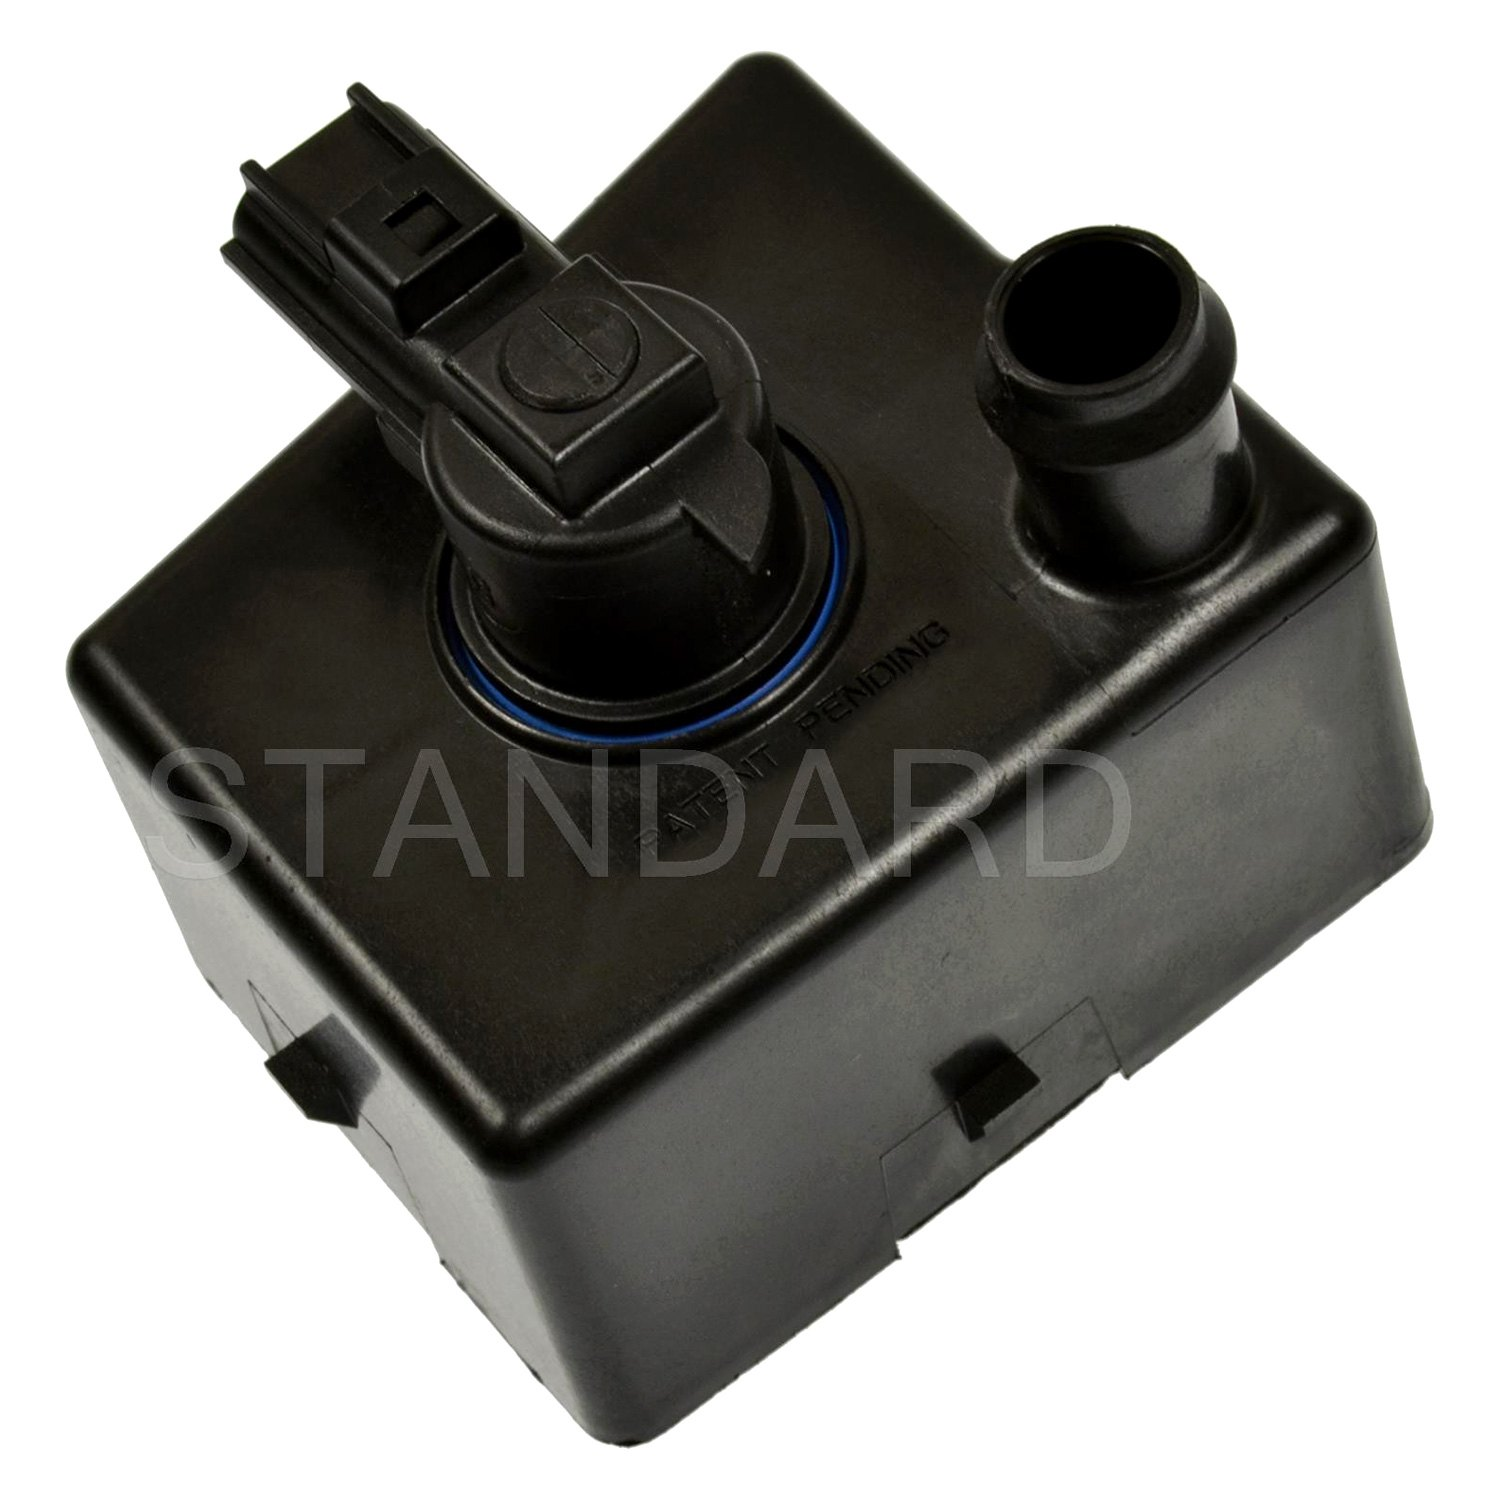 Ford Fusion Parts >> Standard® - Ford Fusion 2013 Vapor Canister Purge Solenoid